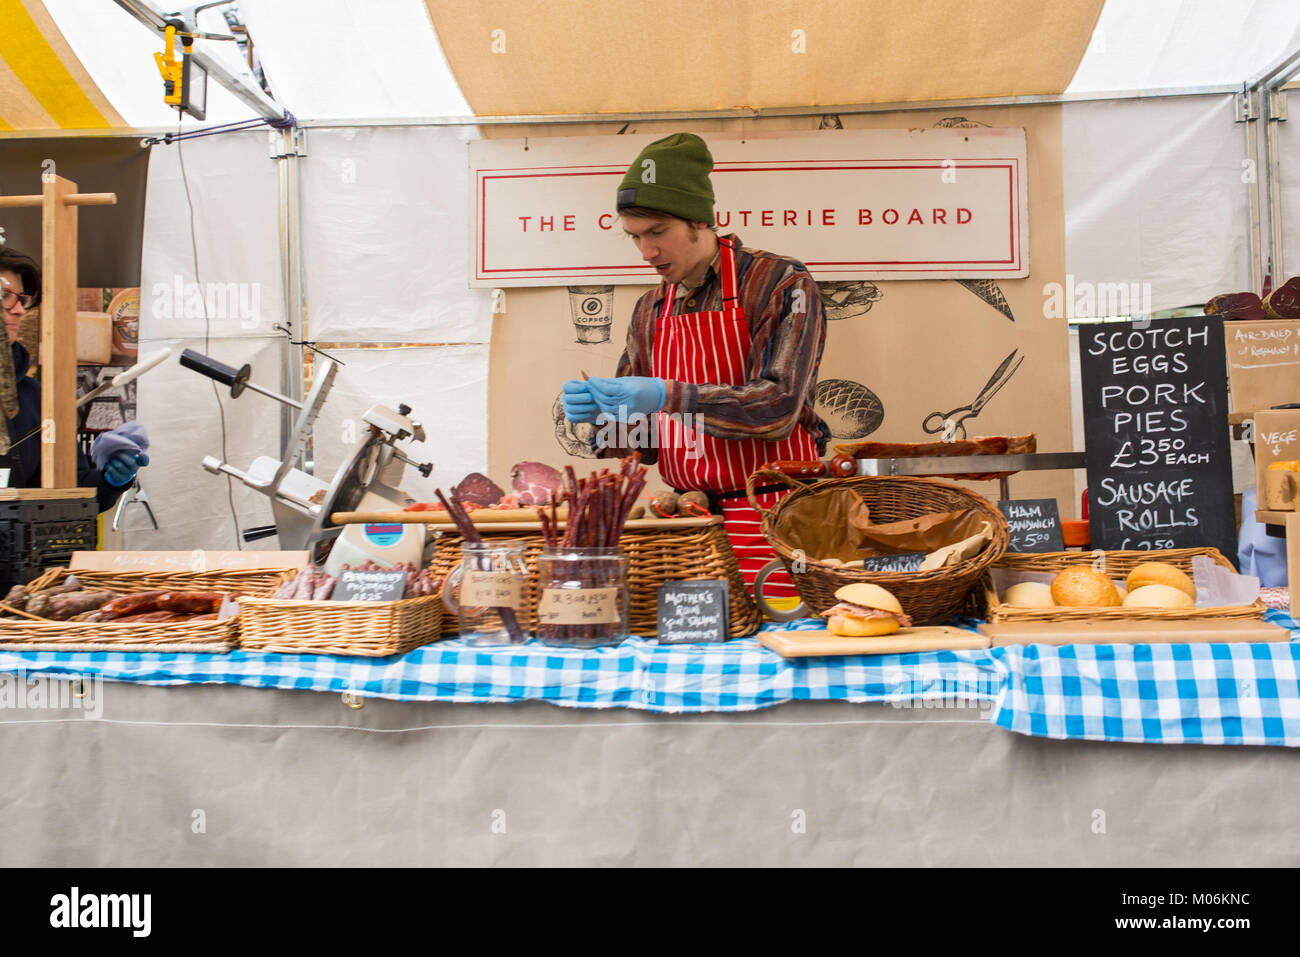 Hipster charcuterie stall serving cured meat and sausage rolls at the Canopy Market, King's Cross, London. Canopy - Stock Image